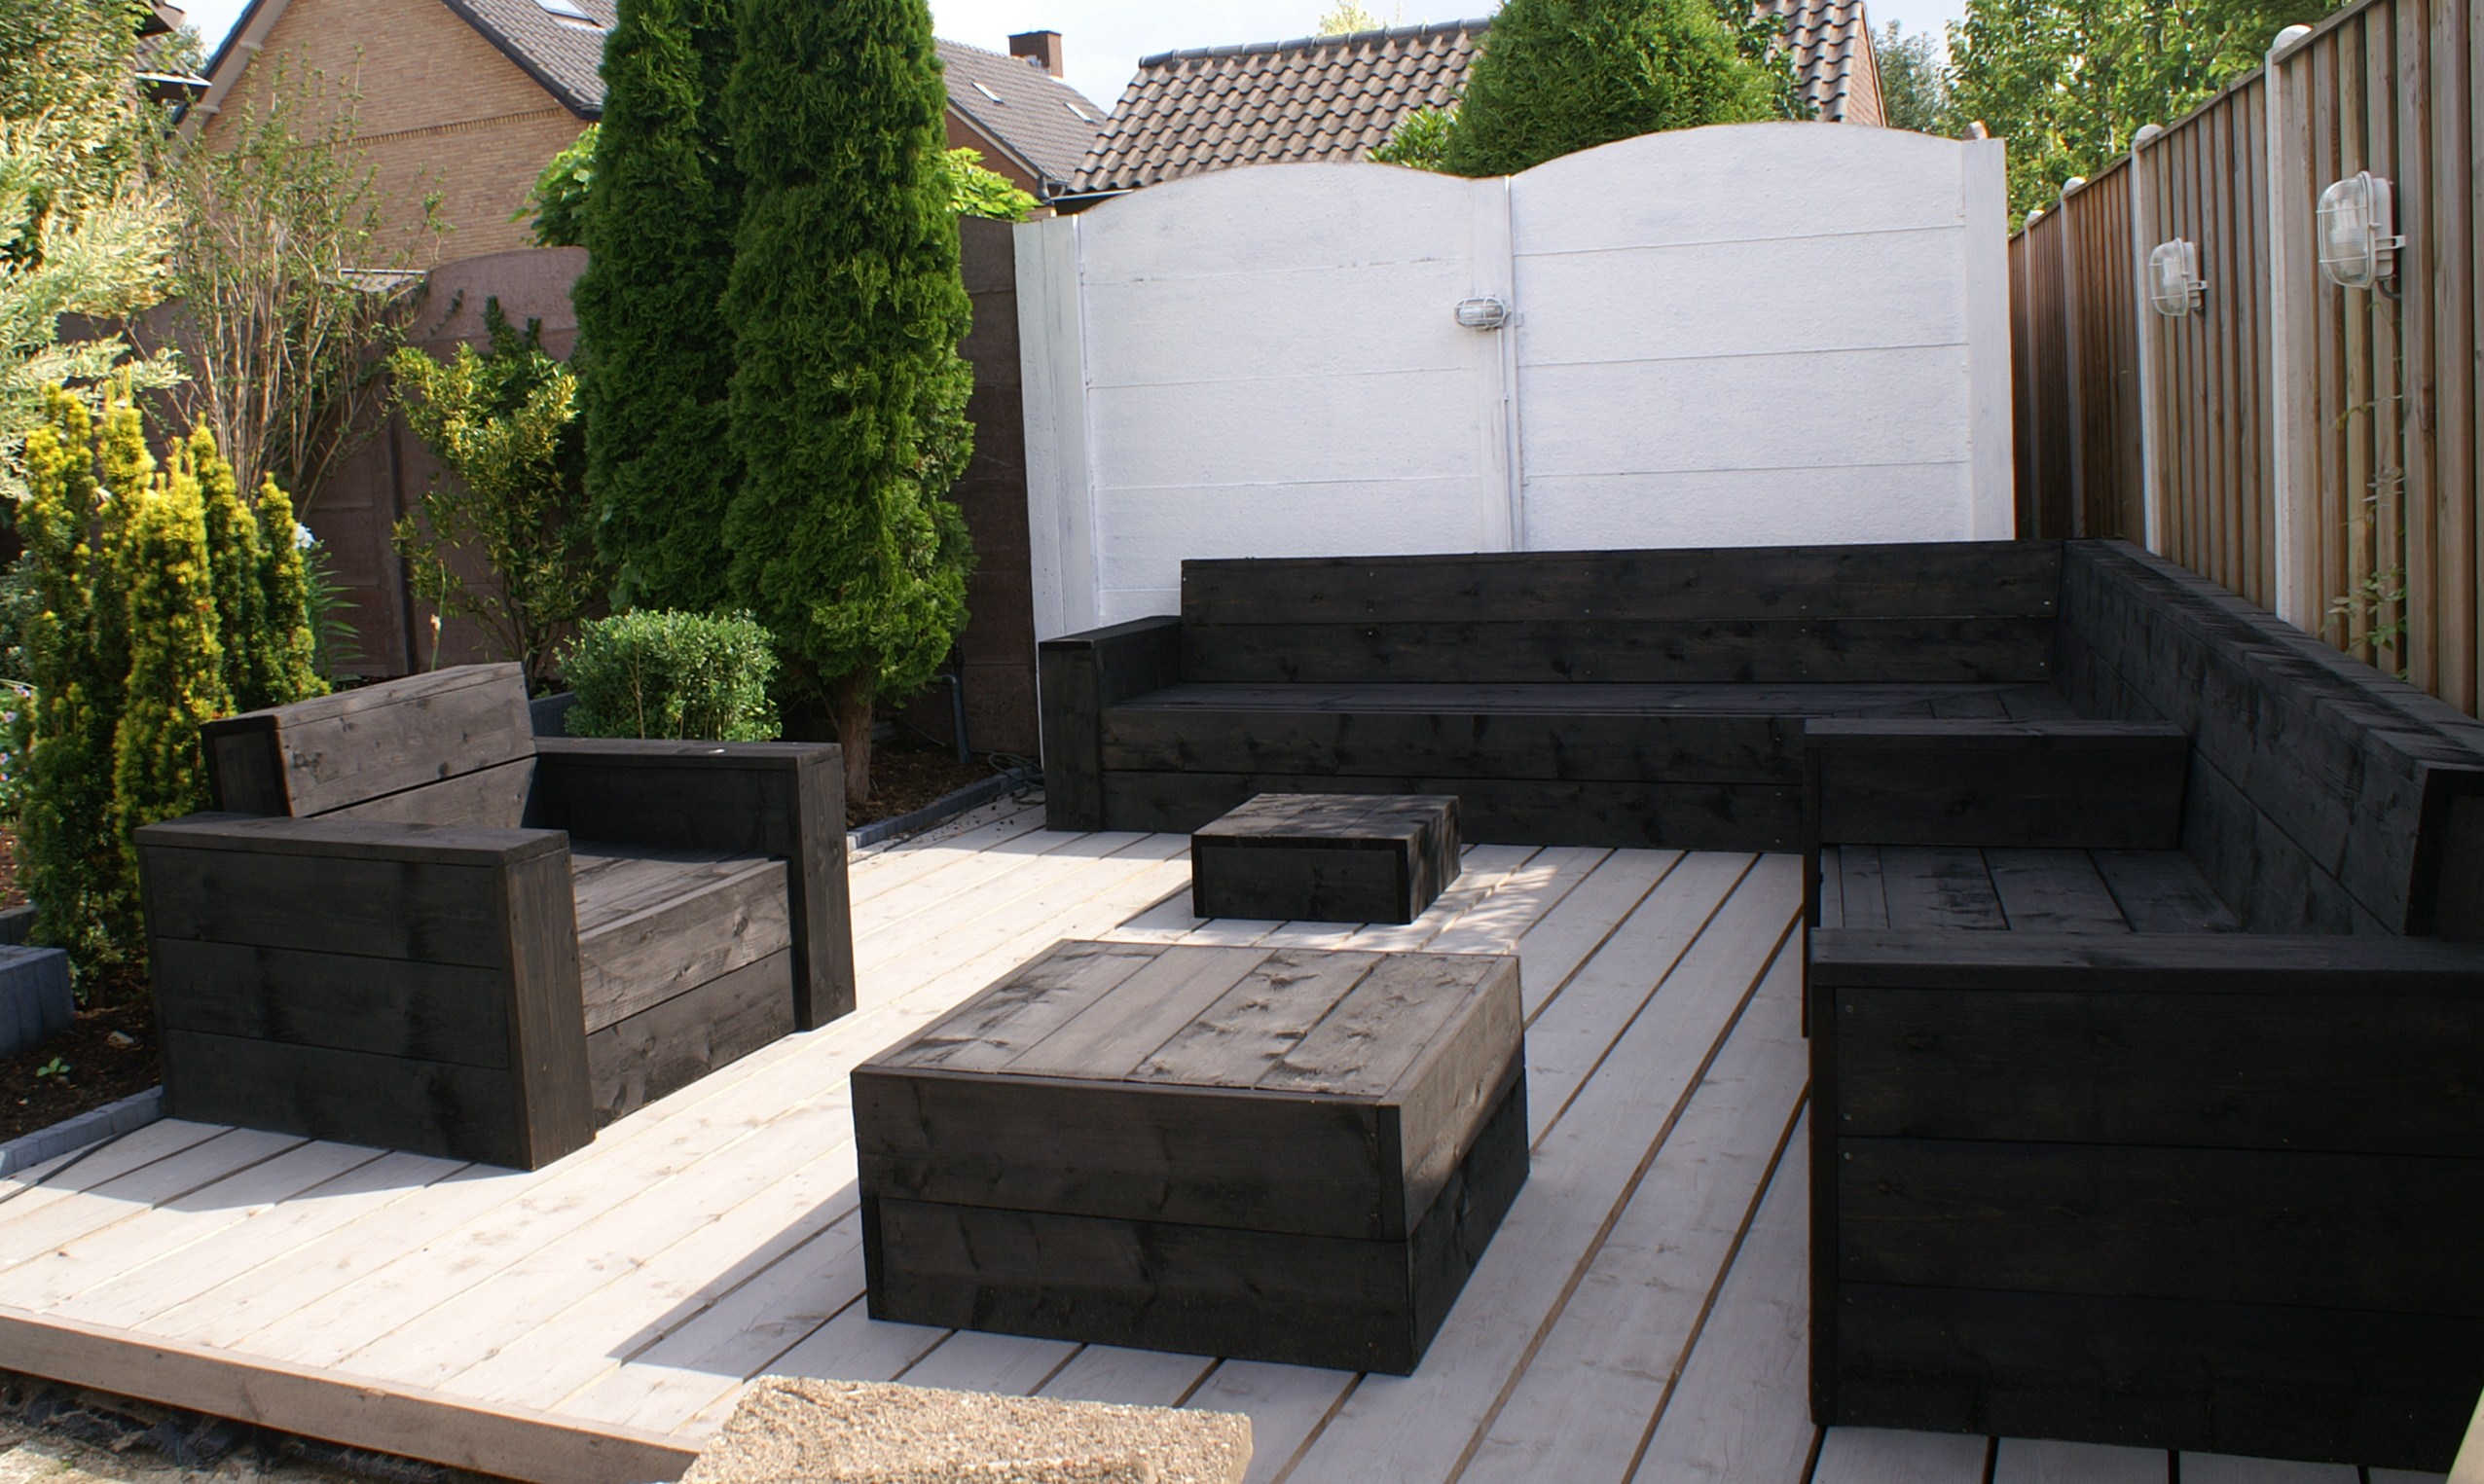 #4B5F2822260016  Design Uploaded By Gisle Bawaden Added April 11 2017 Tags Home Design Aanbevolen Design Houten Tuinmeubelen 1159 afbeelding/foto 255215251159 beeld